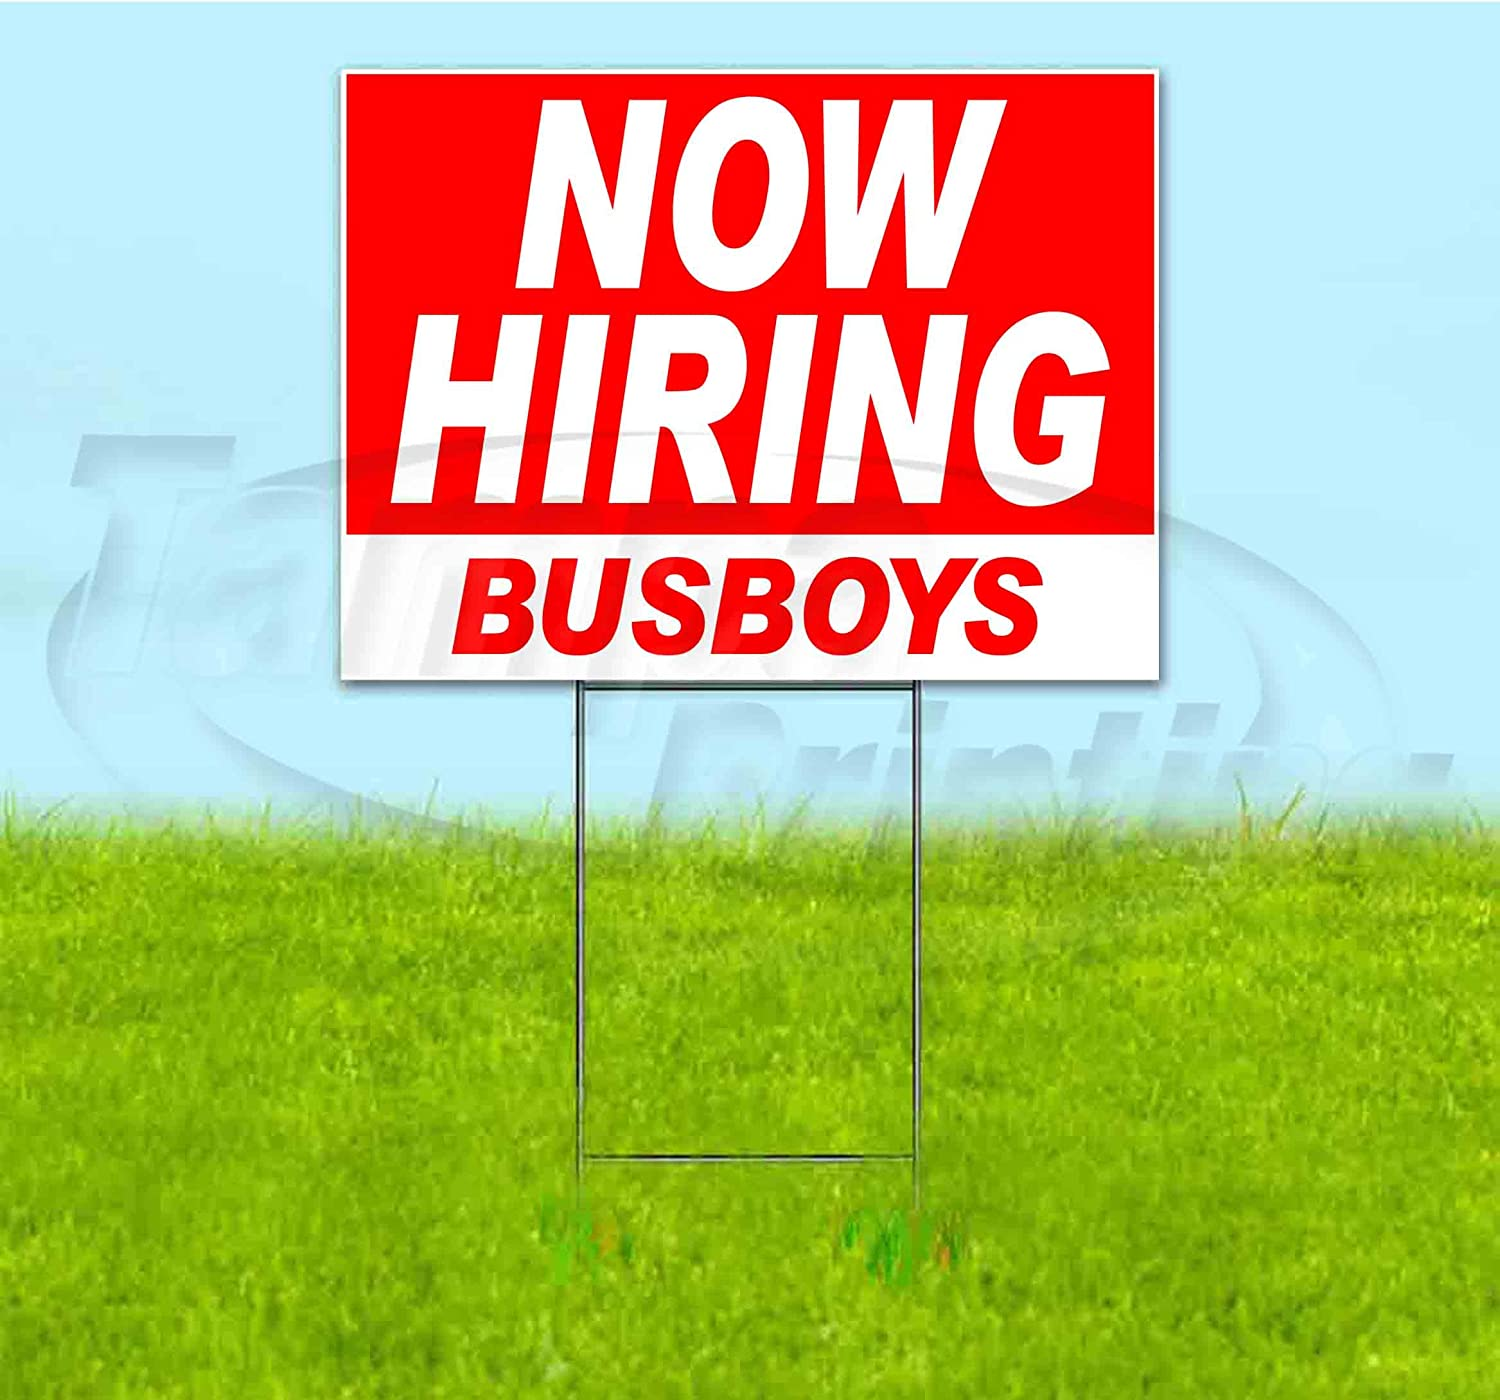 Now Hiring Busboys Max 60% OFF 18